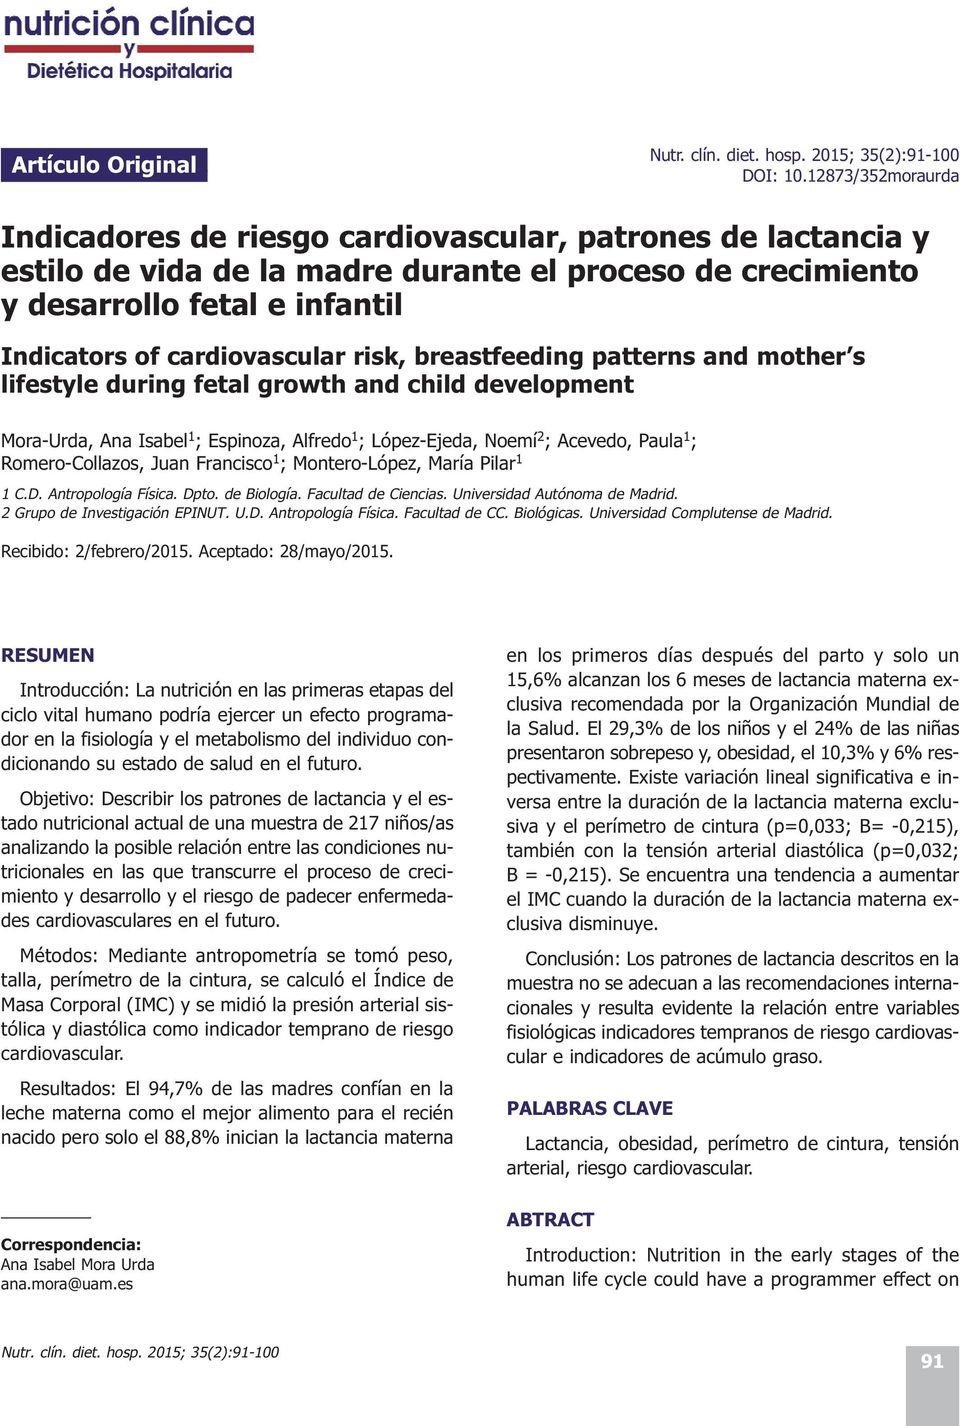 risk, breastfeeding patterns and mother s lifestyle during fetal growth and child development Mora-Urda, Ana Isabel 1 ; Espinoza, Alfredo 1 ; López-Ejeda, Noemí 2 ; Acevedo, Paula 1 ;